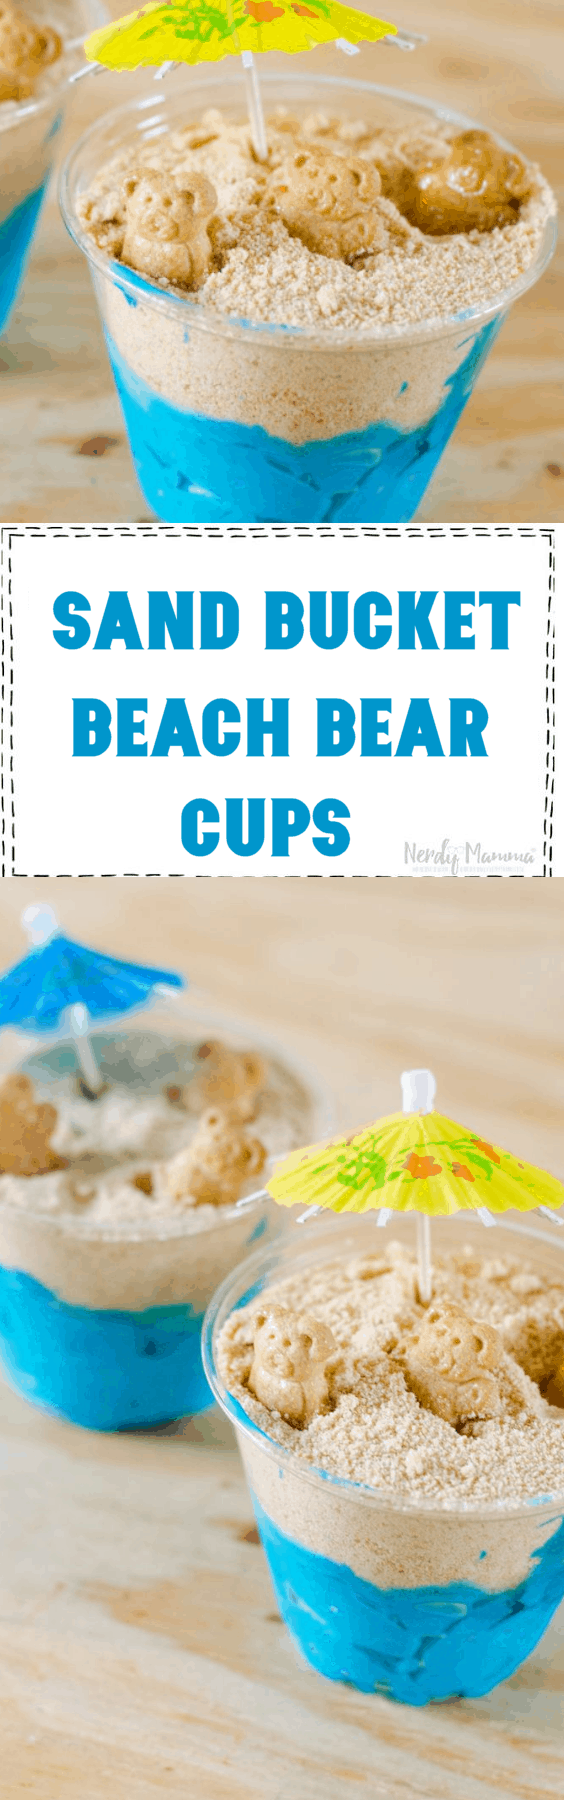 Sand Bucket Beach Bears Cups